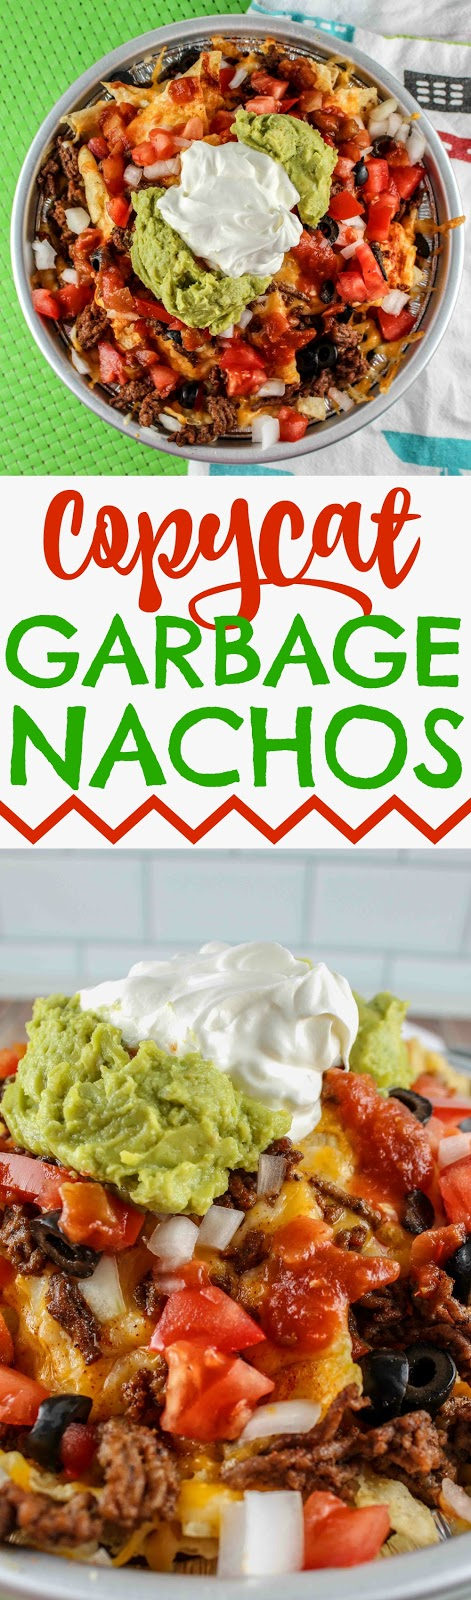 When I visited Gulf Shores and Orange Beach - one place I loved was Tacky Jacks! These Garbage Nachos were so fun and so delicious!  had to make them myself! They could also be called Kitchen Sink nachos because they've got everything!